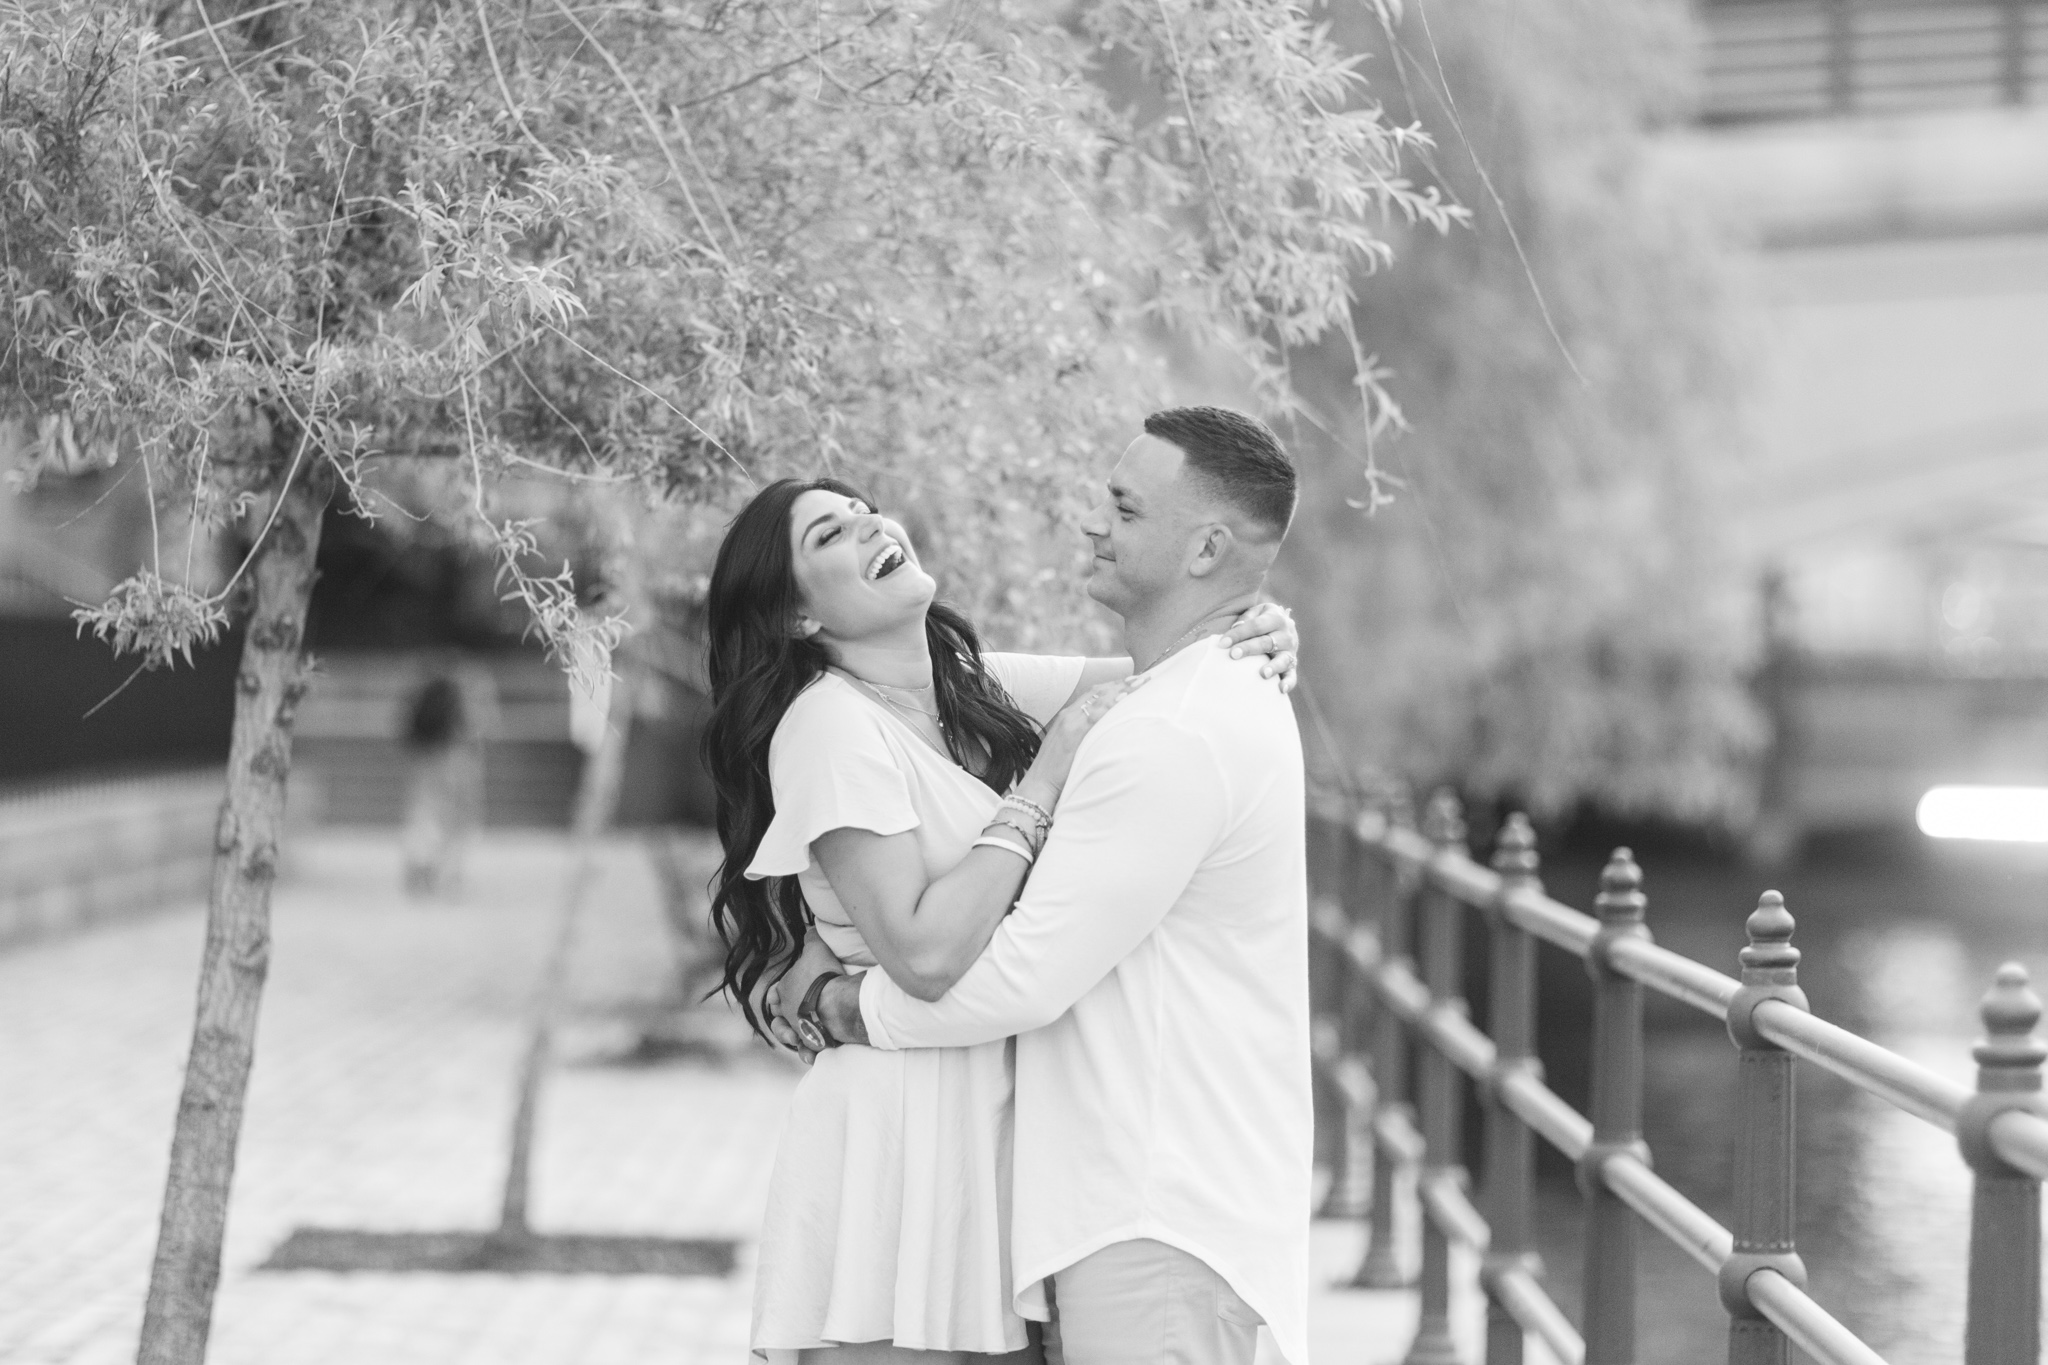 engagement_wedding_photographer_jillian_rollins_photography-76.jpg